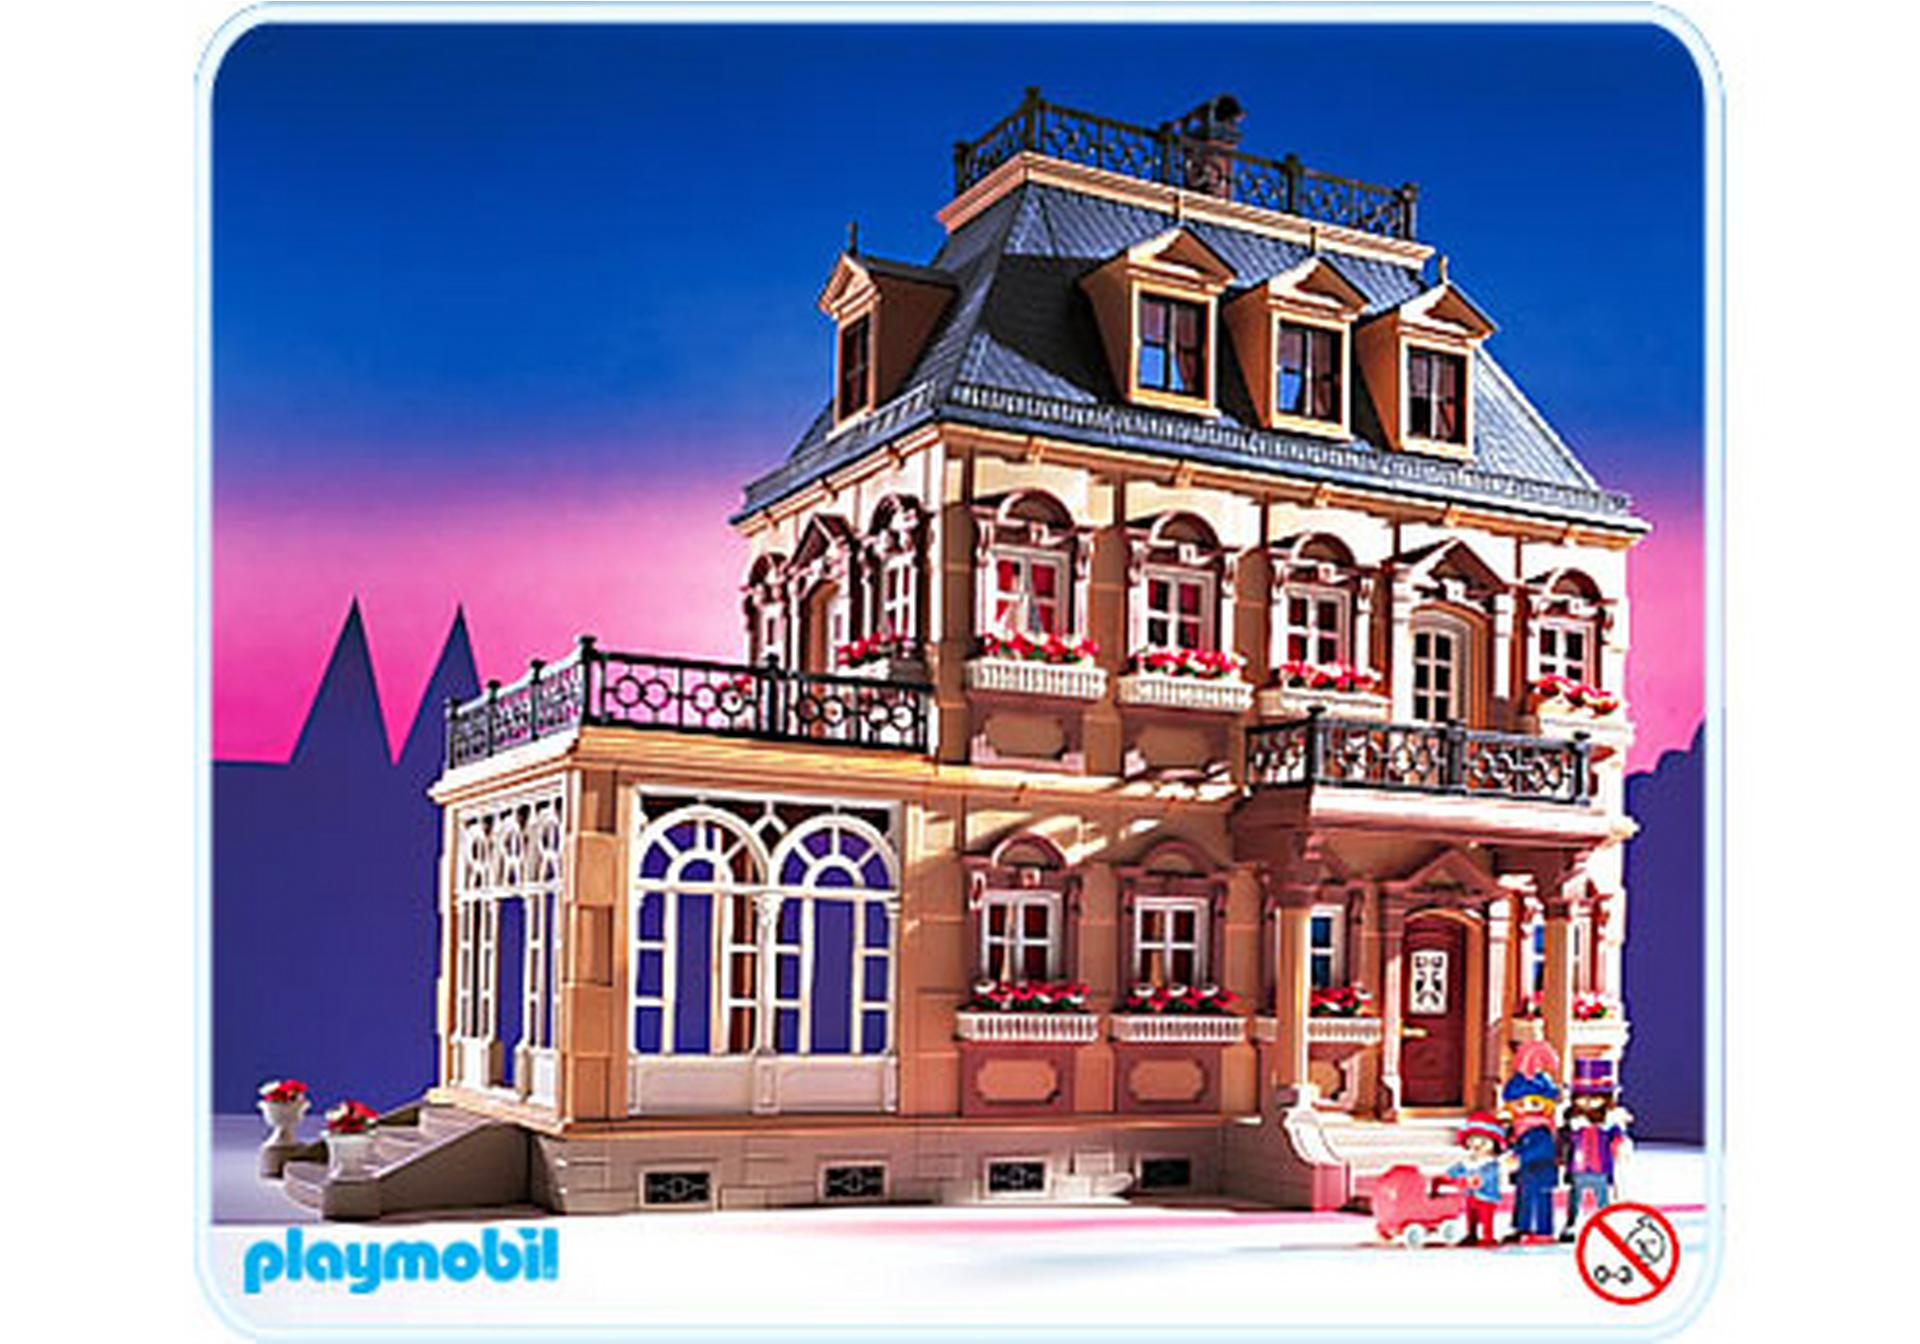 Best Maison Moderne Playmobil Ideas Awesome Interior Home Satellite